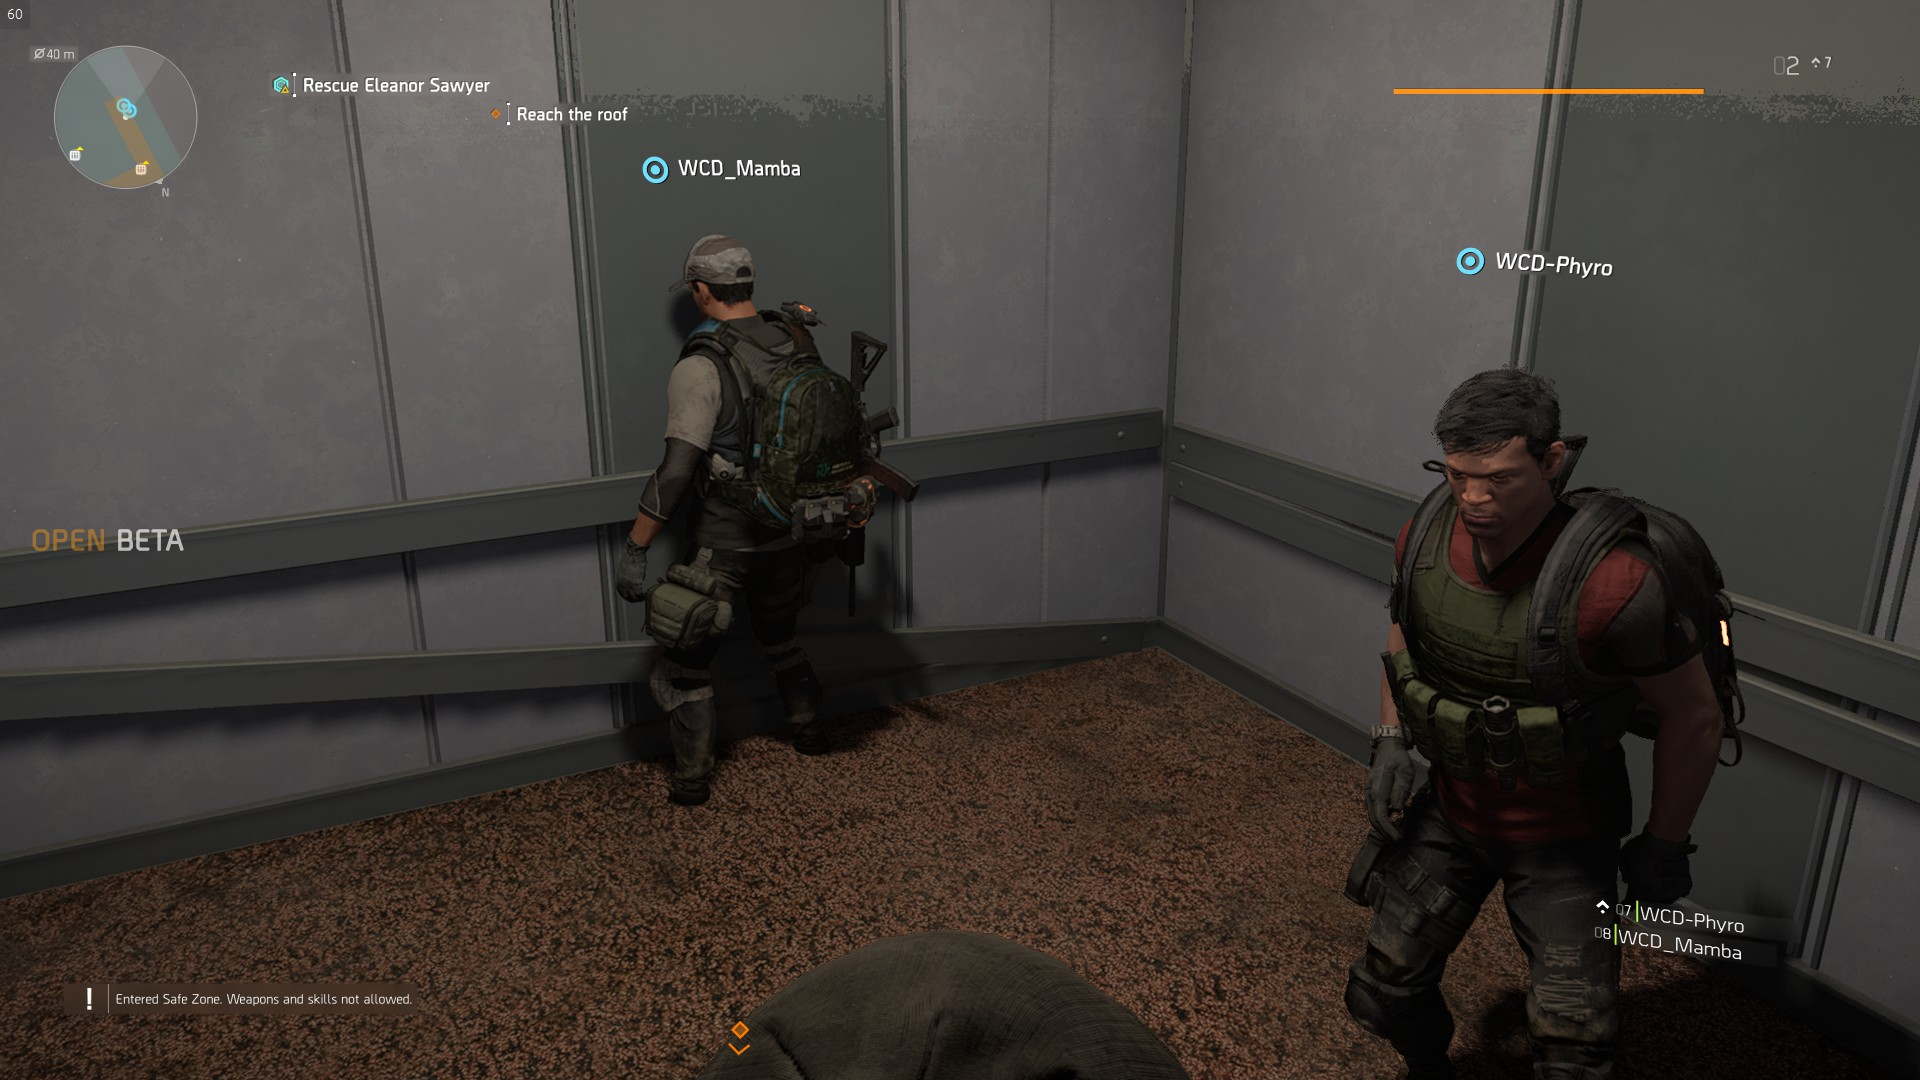 Tom_Clancy's_The_Division_2_-_Open_Beta2